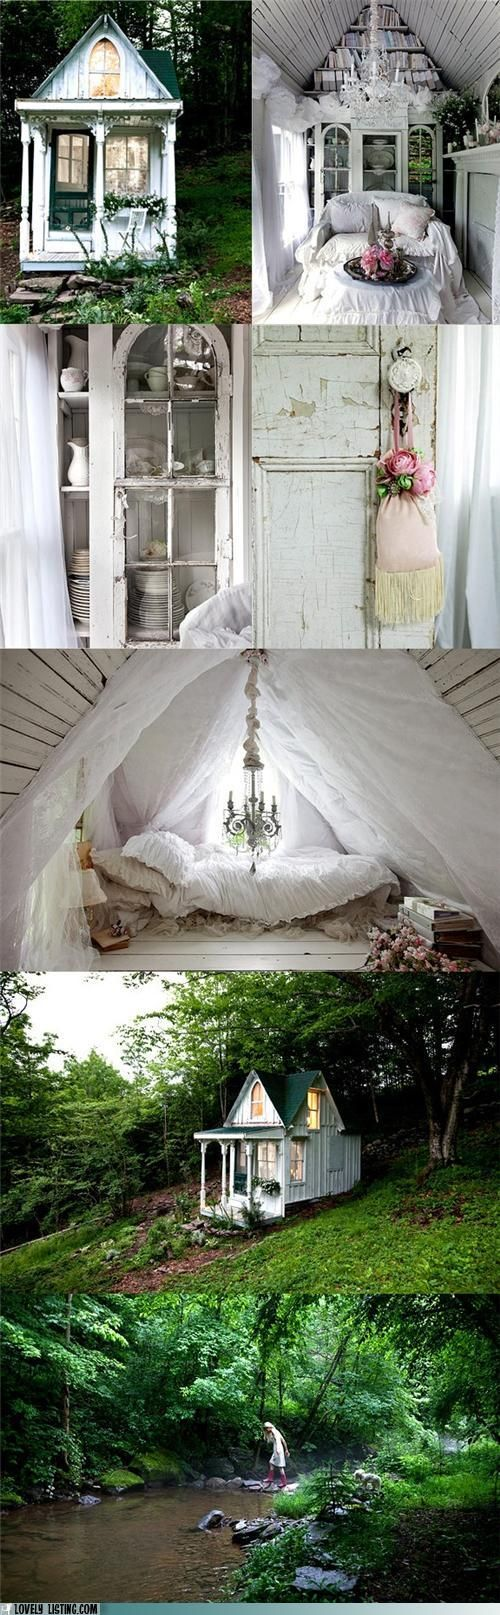 I must have this one day in my backyard...a little whimsy cottage where I can escape.